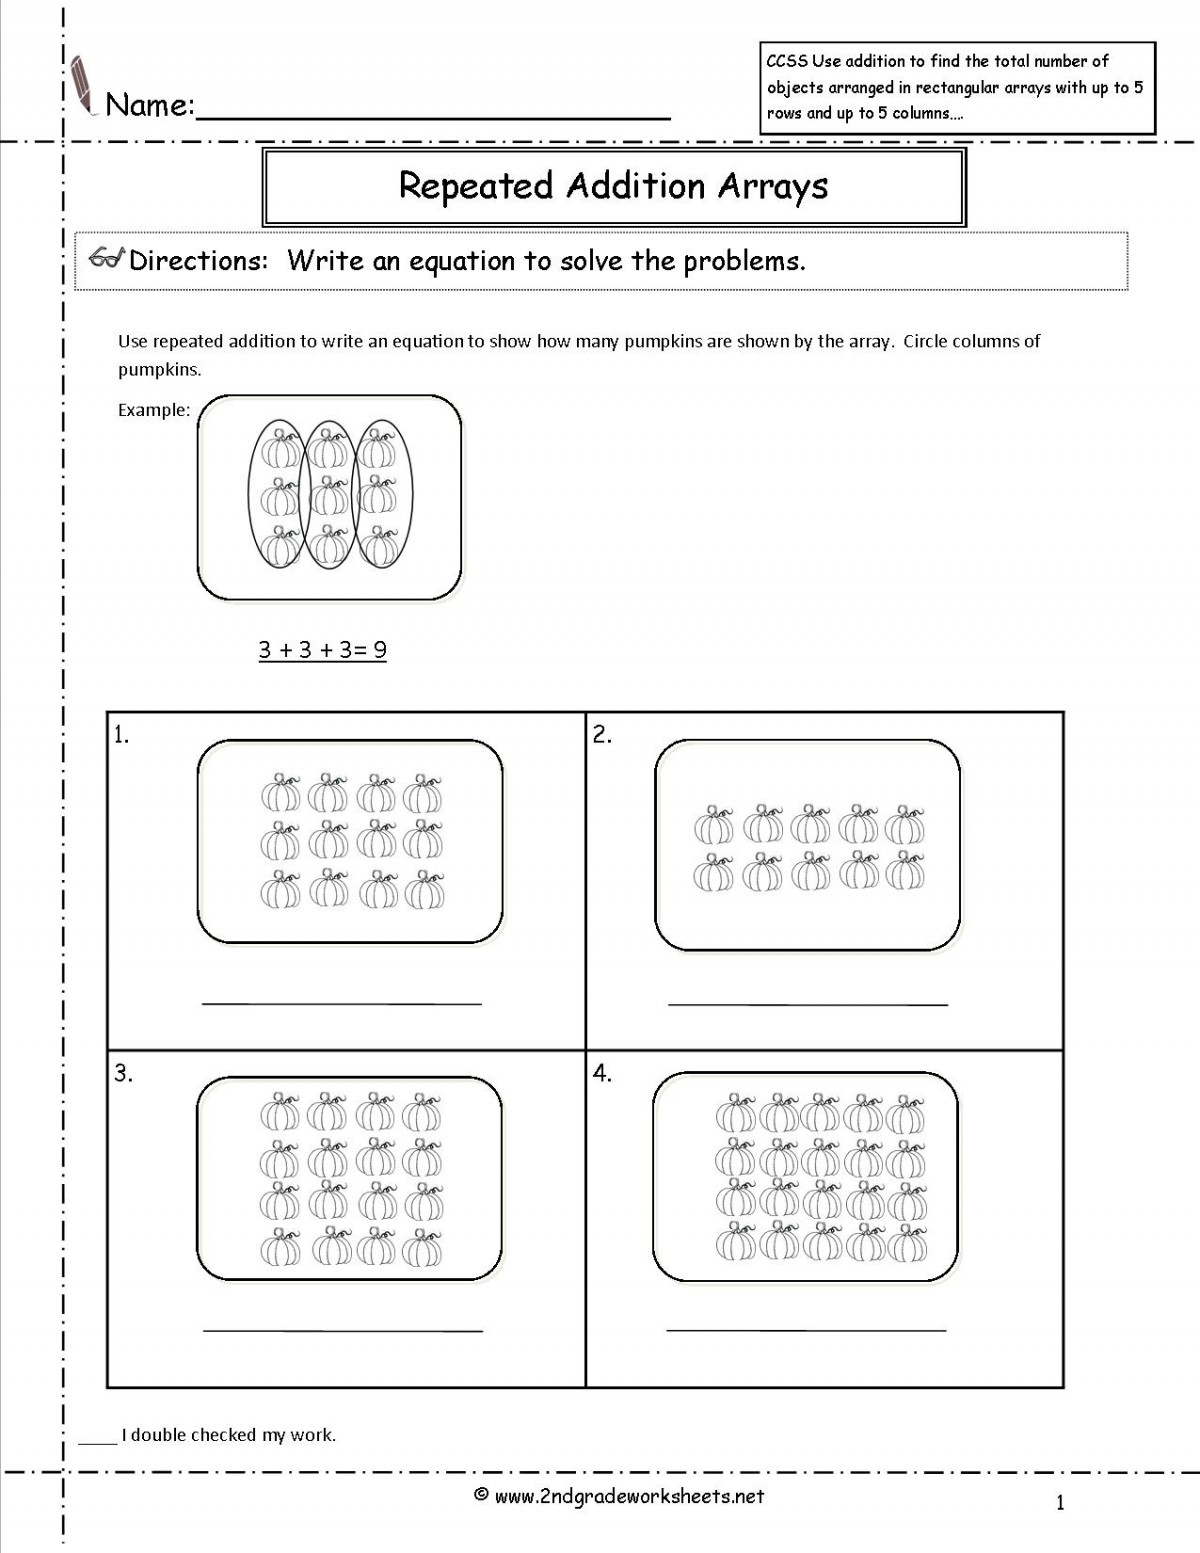 Repeated Addition Arrays 2nd Grade Worksheets